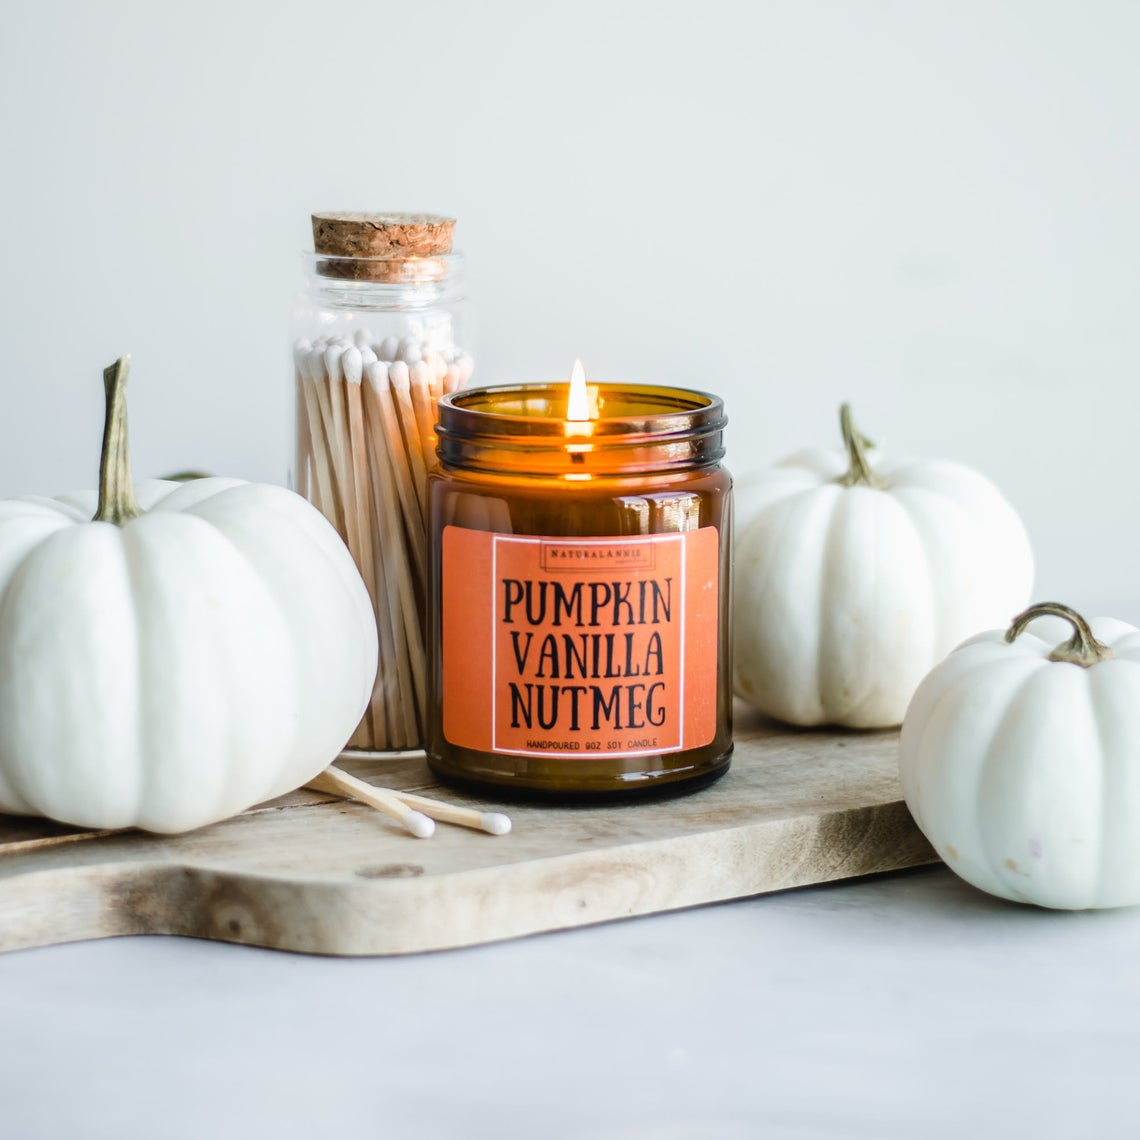 Cozy Fall PUMPKIN VANILLA NUTMEG - Hand Poured Scented Soy Candle - Halloween Home Decor Gift